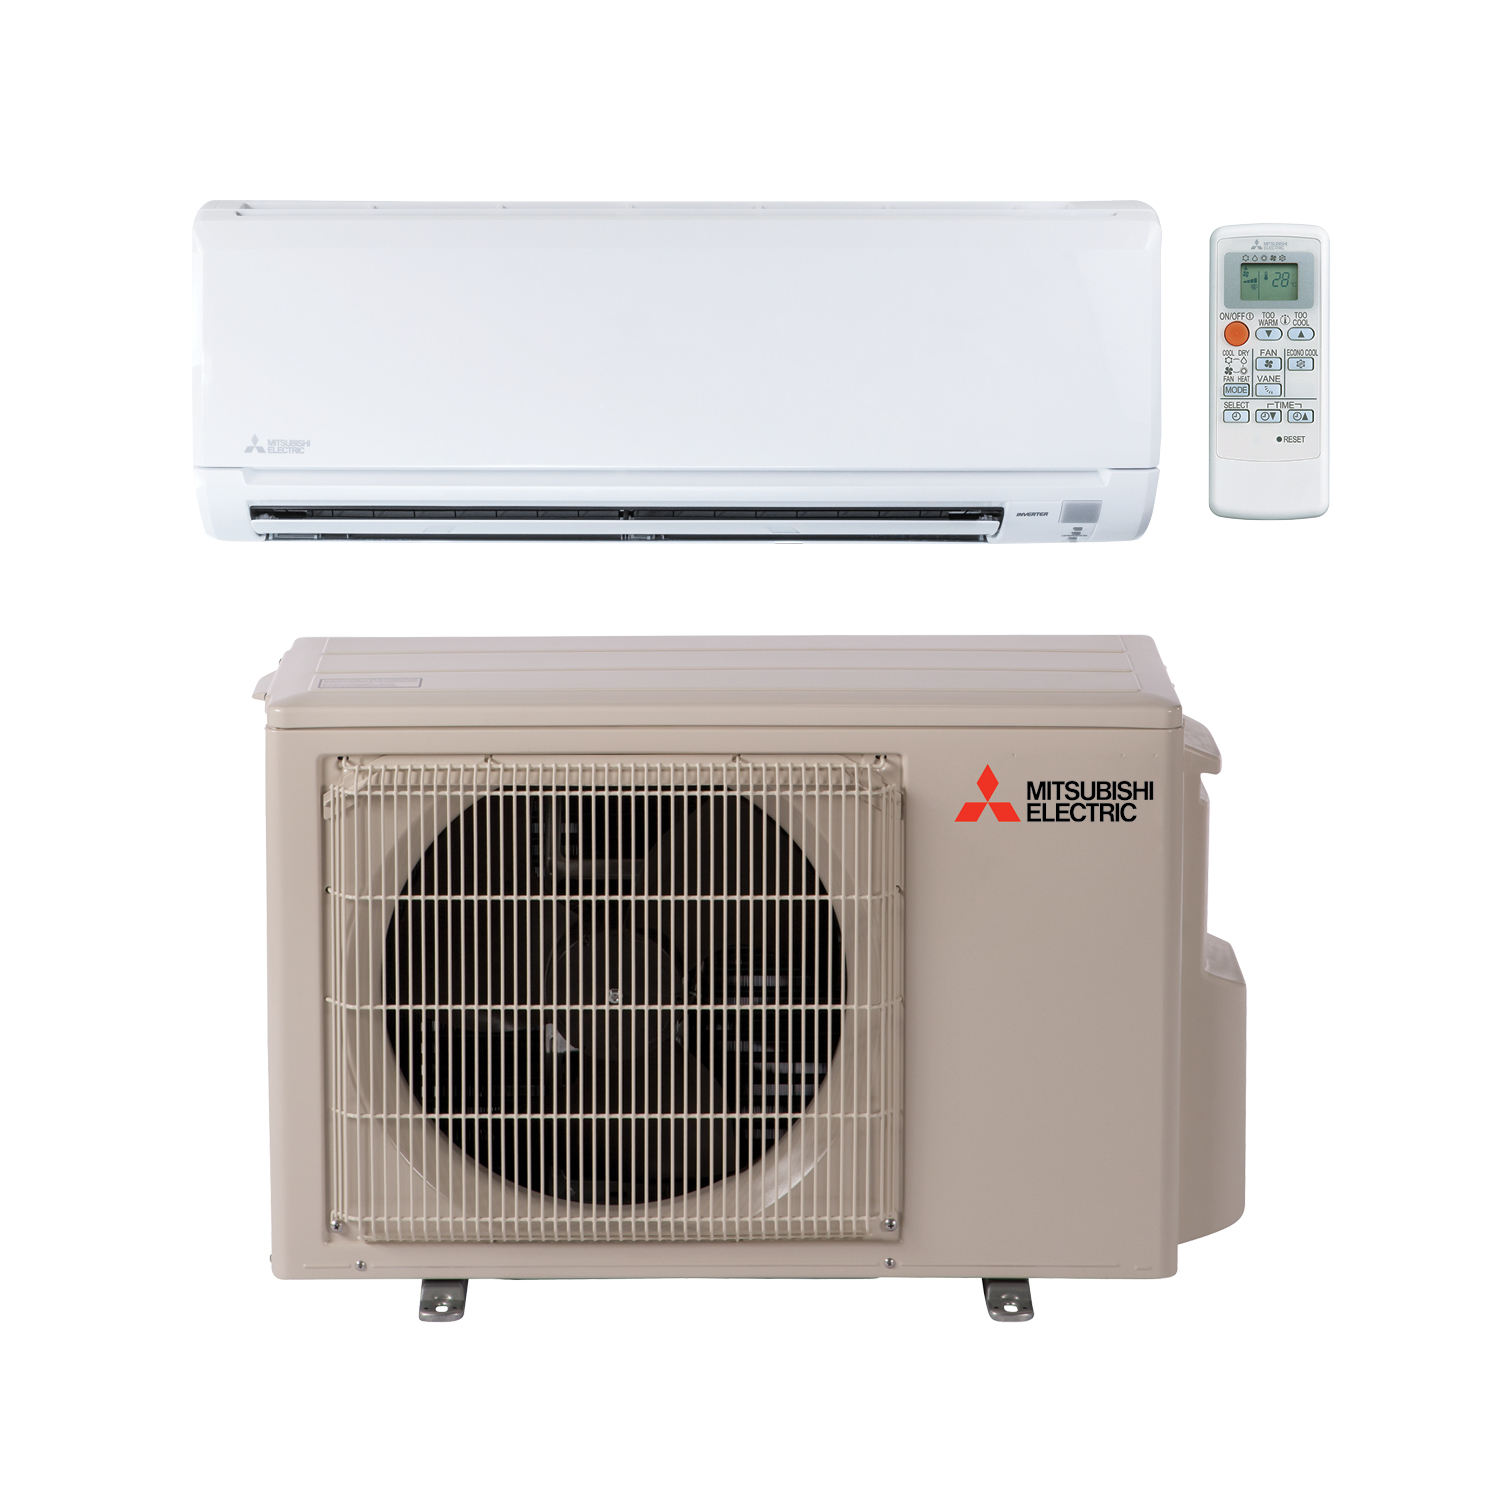 No need to block up a window; go with mini split heating and cooling units, like this one fromMitsubishi Electric.